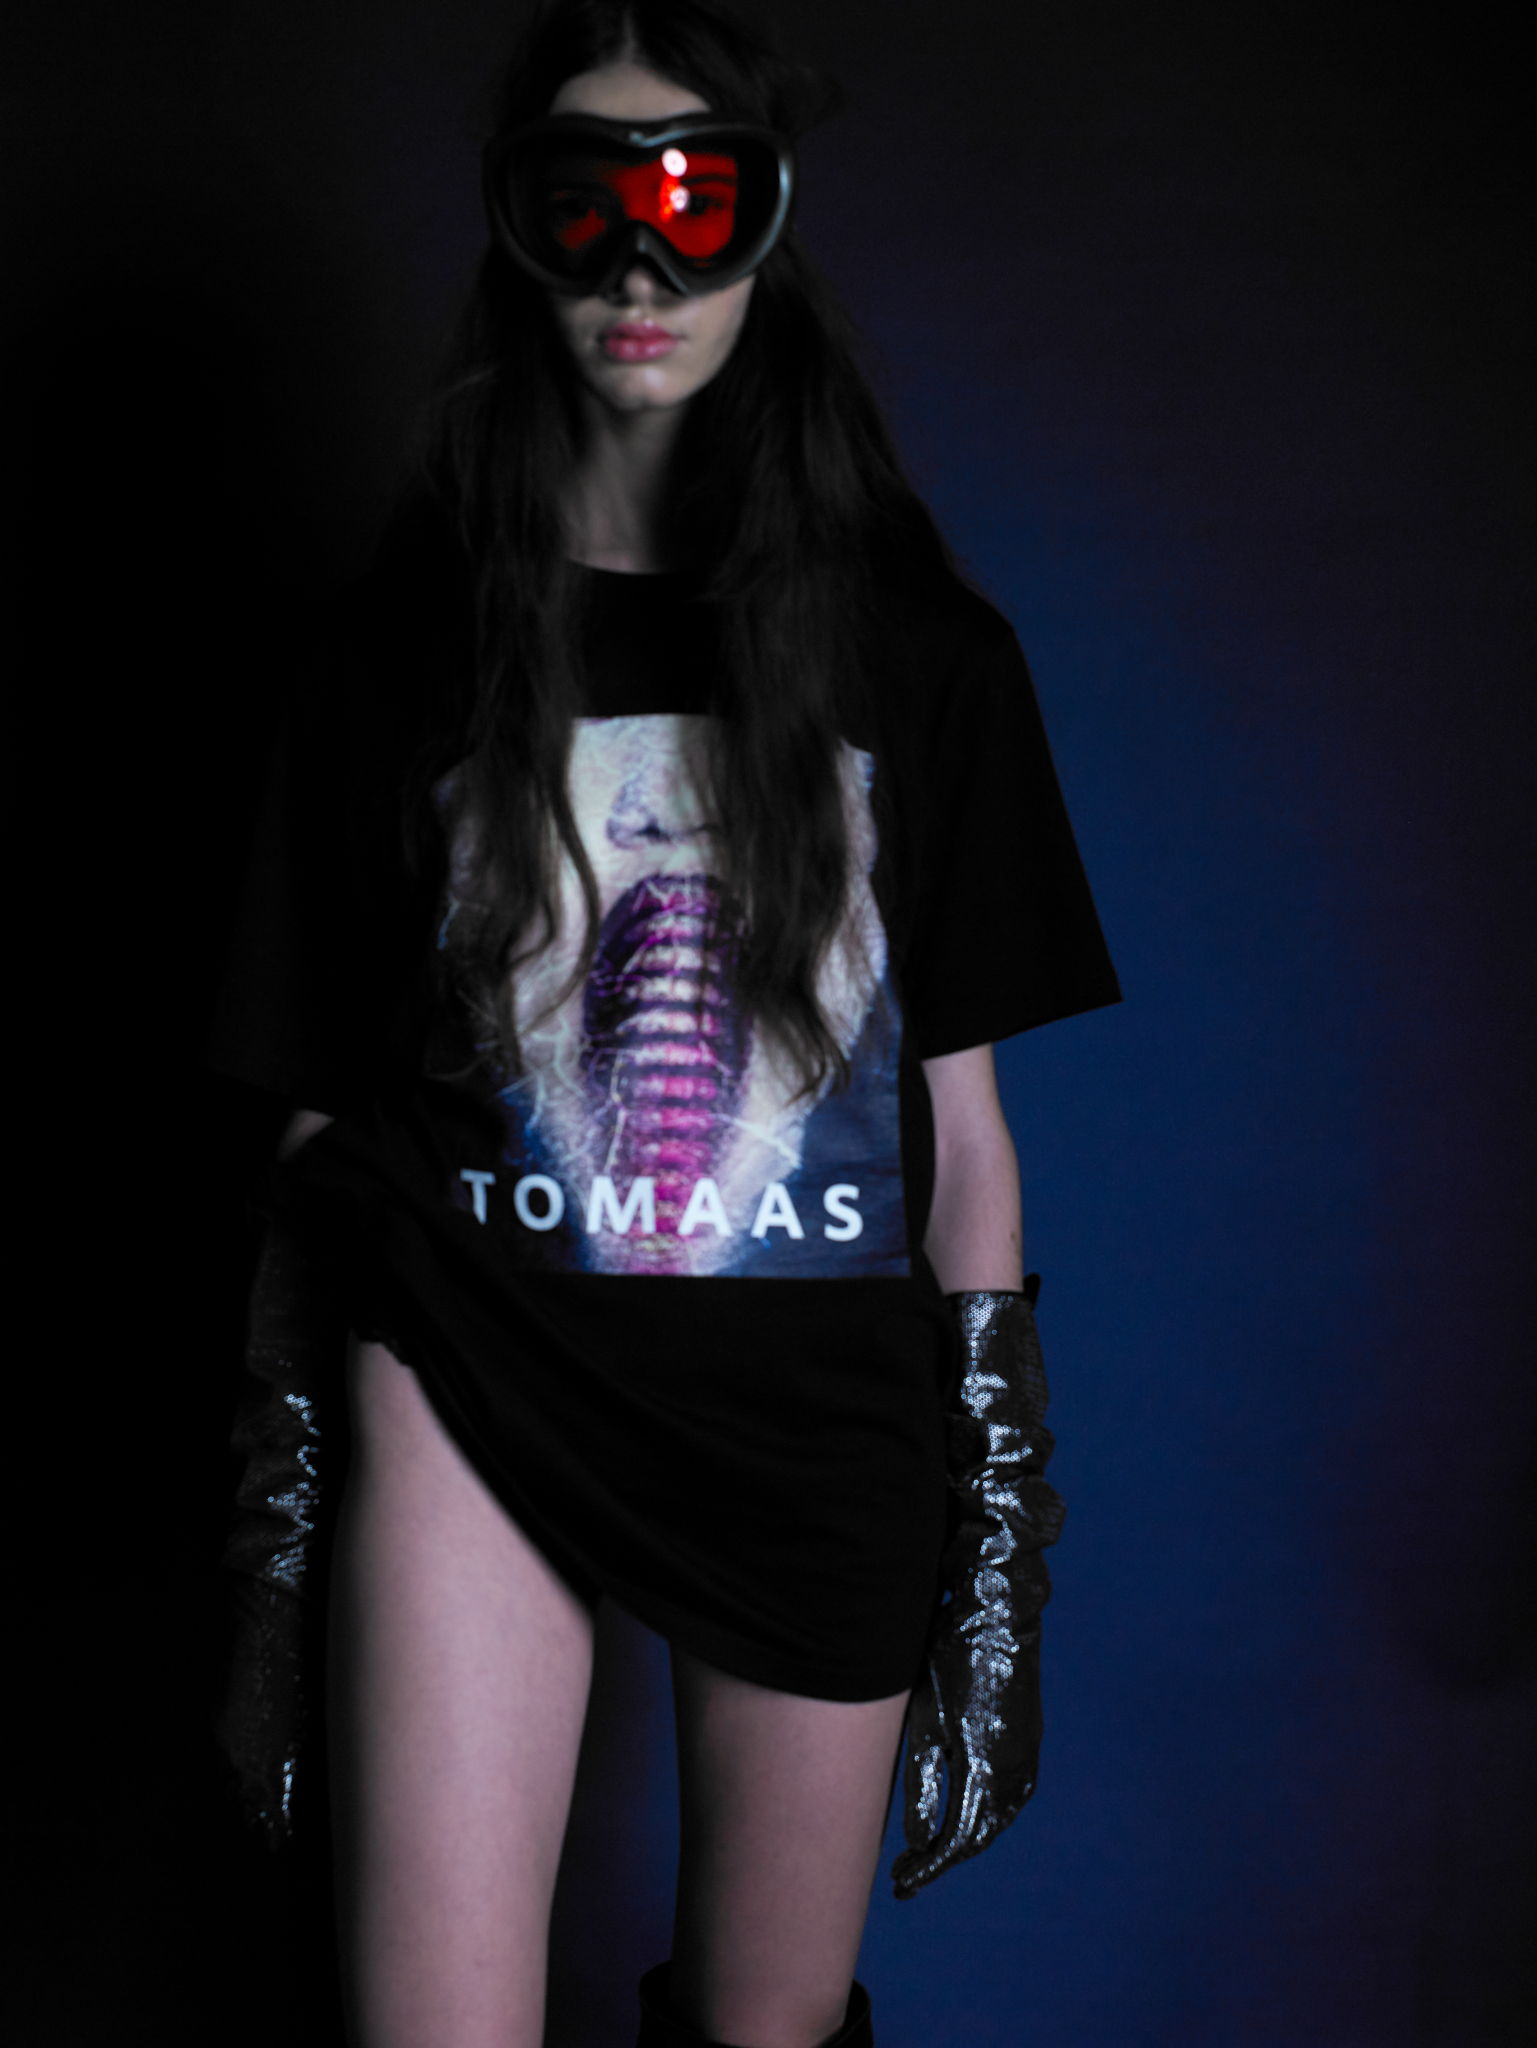 gloves : thomasinegloves T.shirt : TOMAAS boots : seyit ares